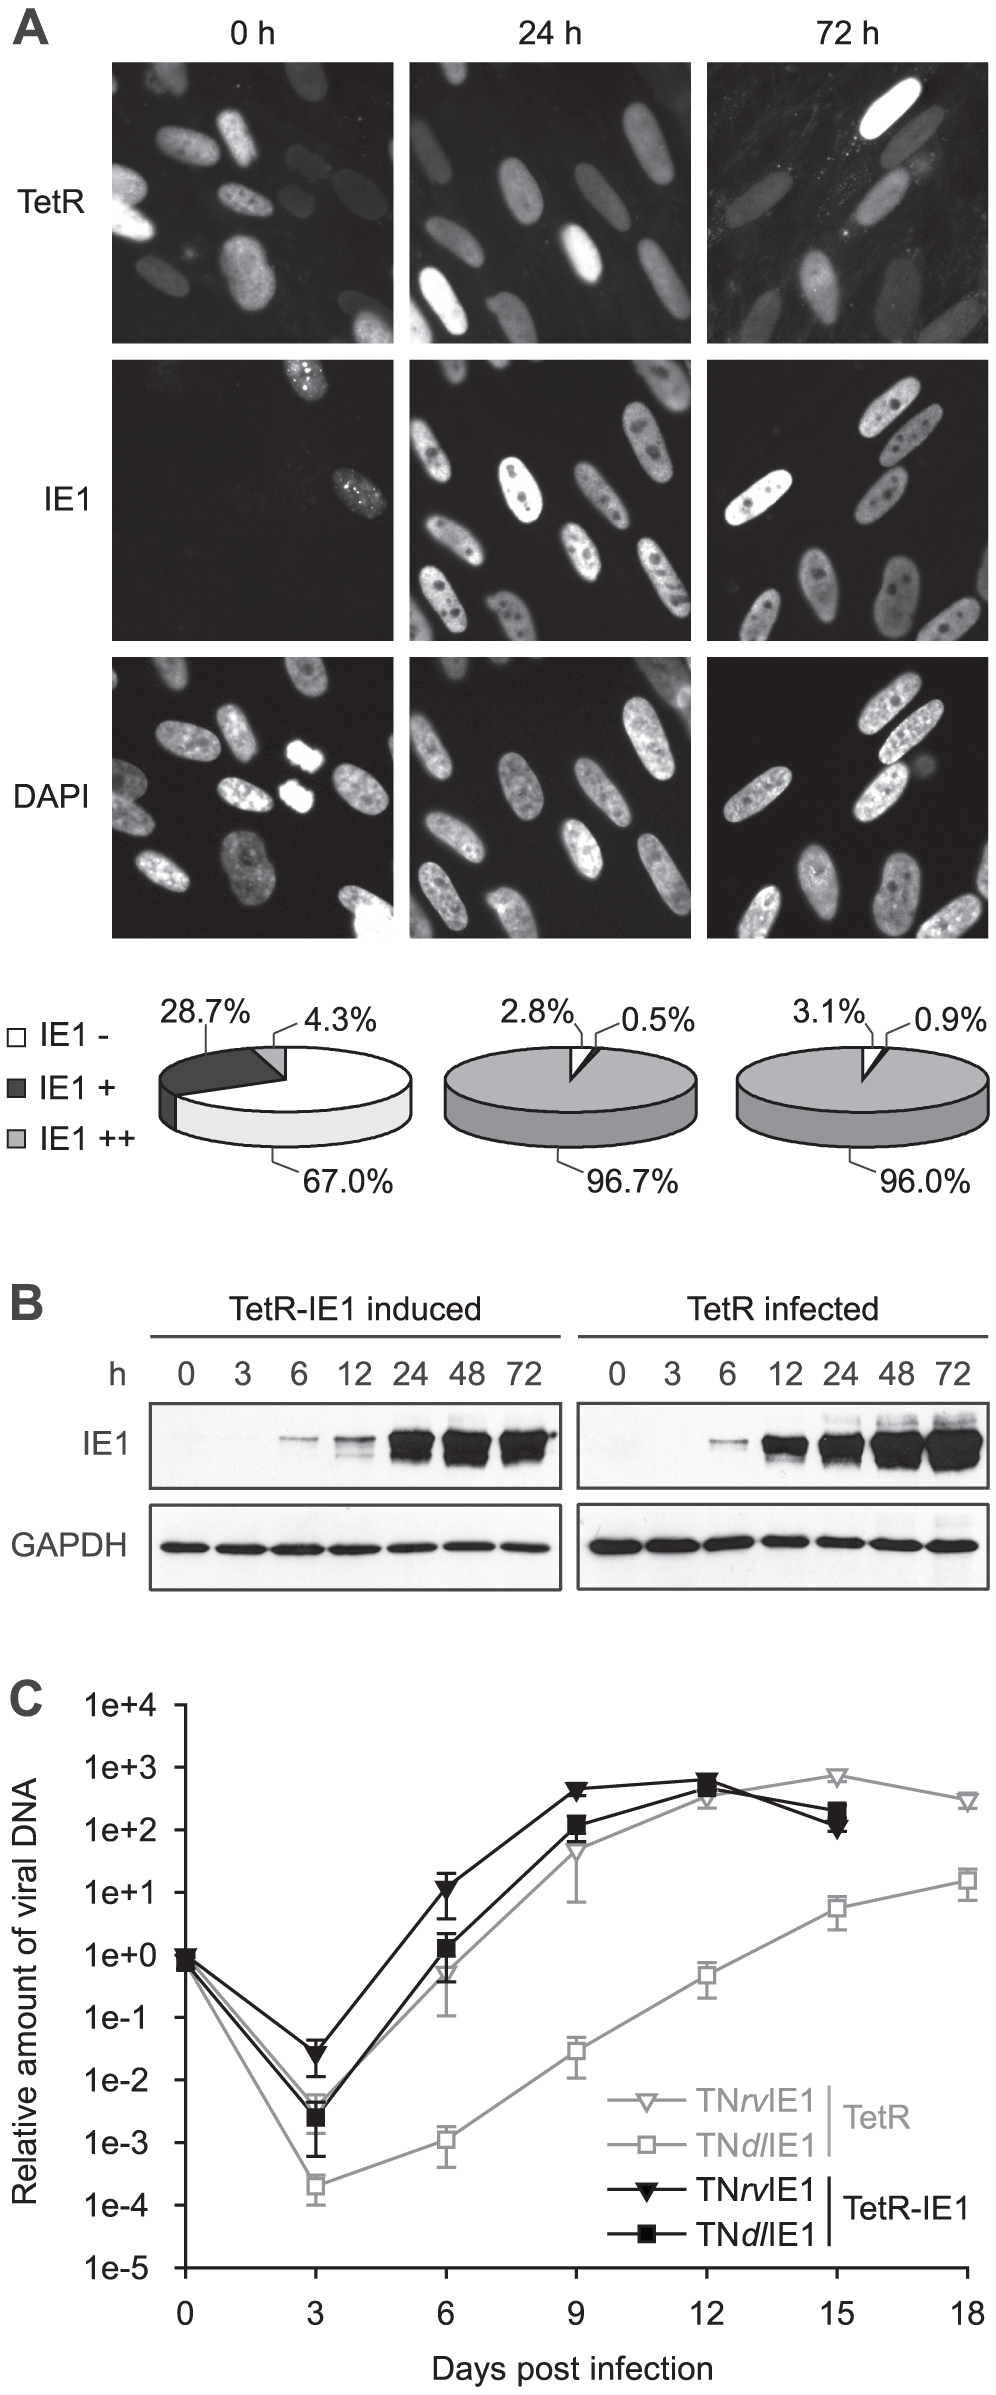 Characterization of TetR-IE1 cells.